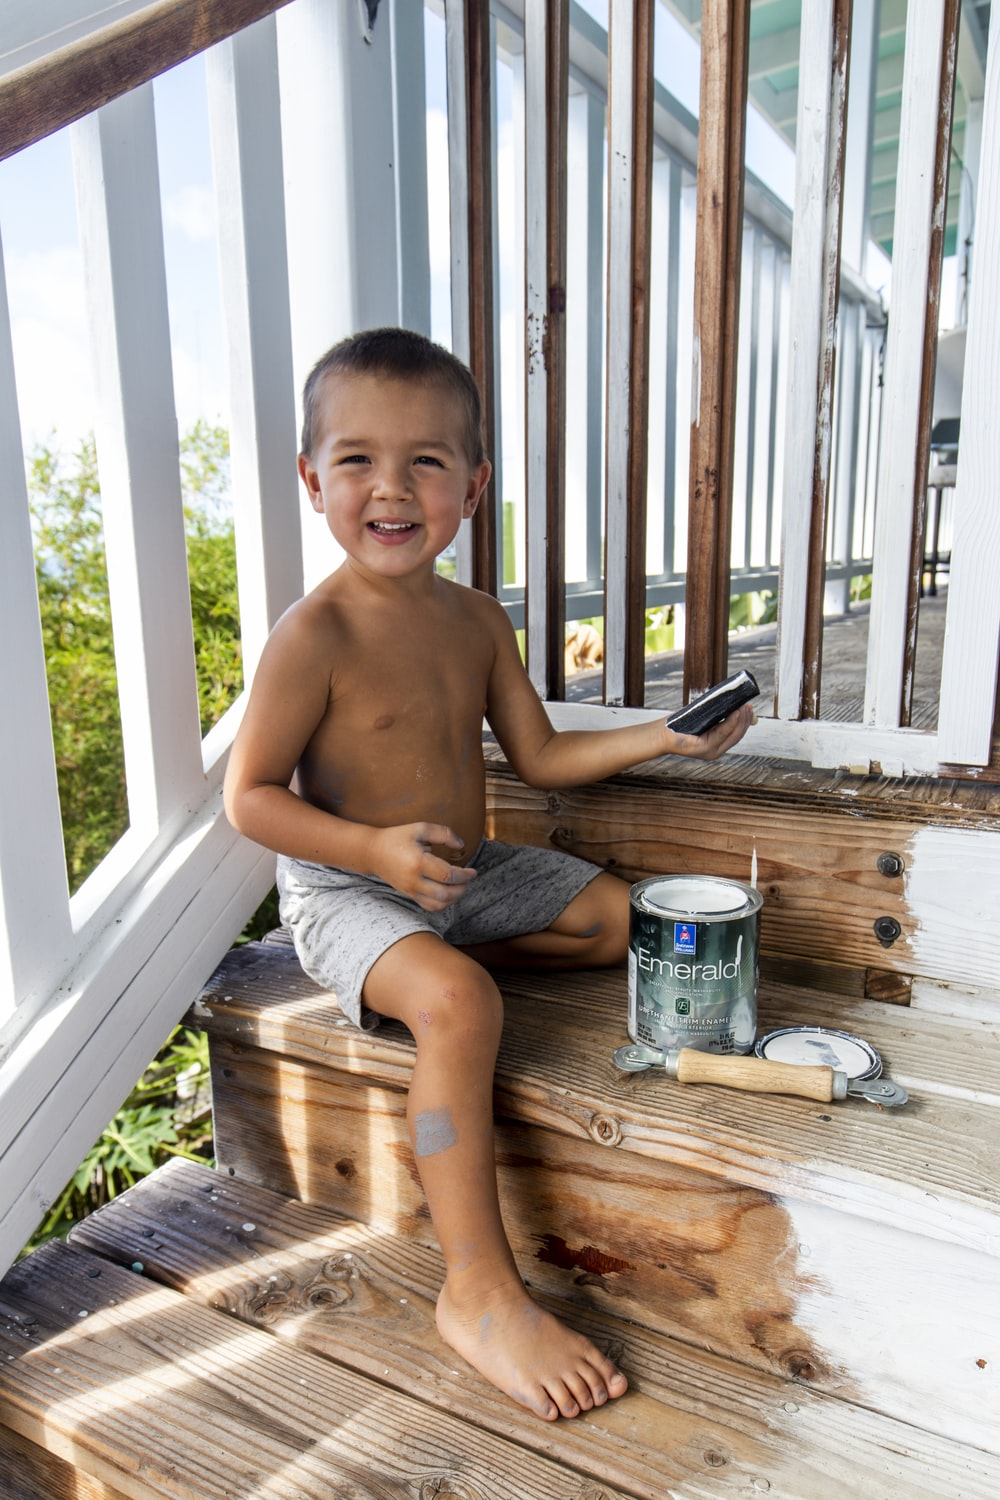 topless boy sitting on brown wooden bench